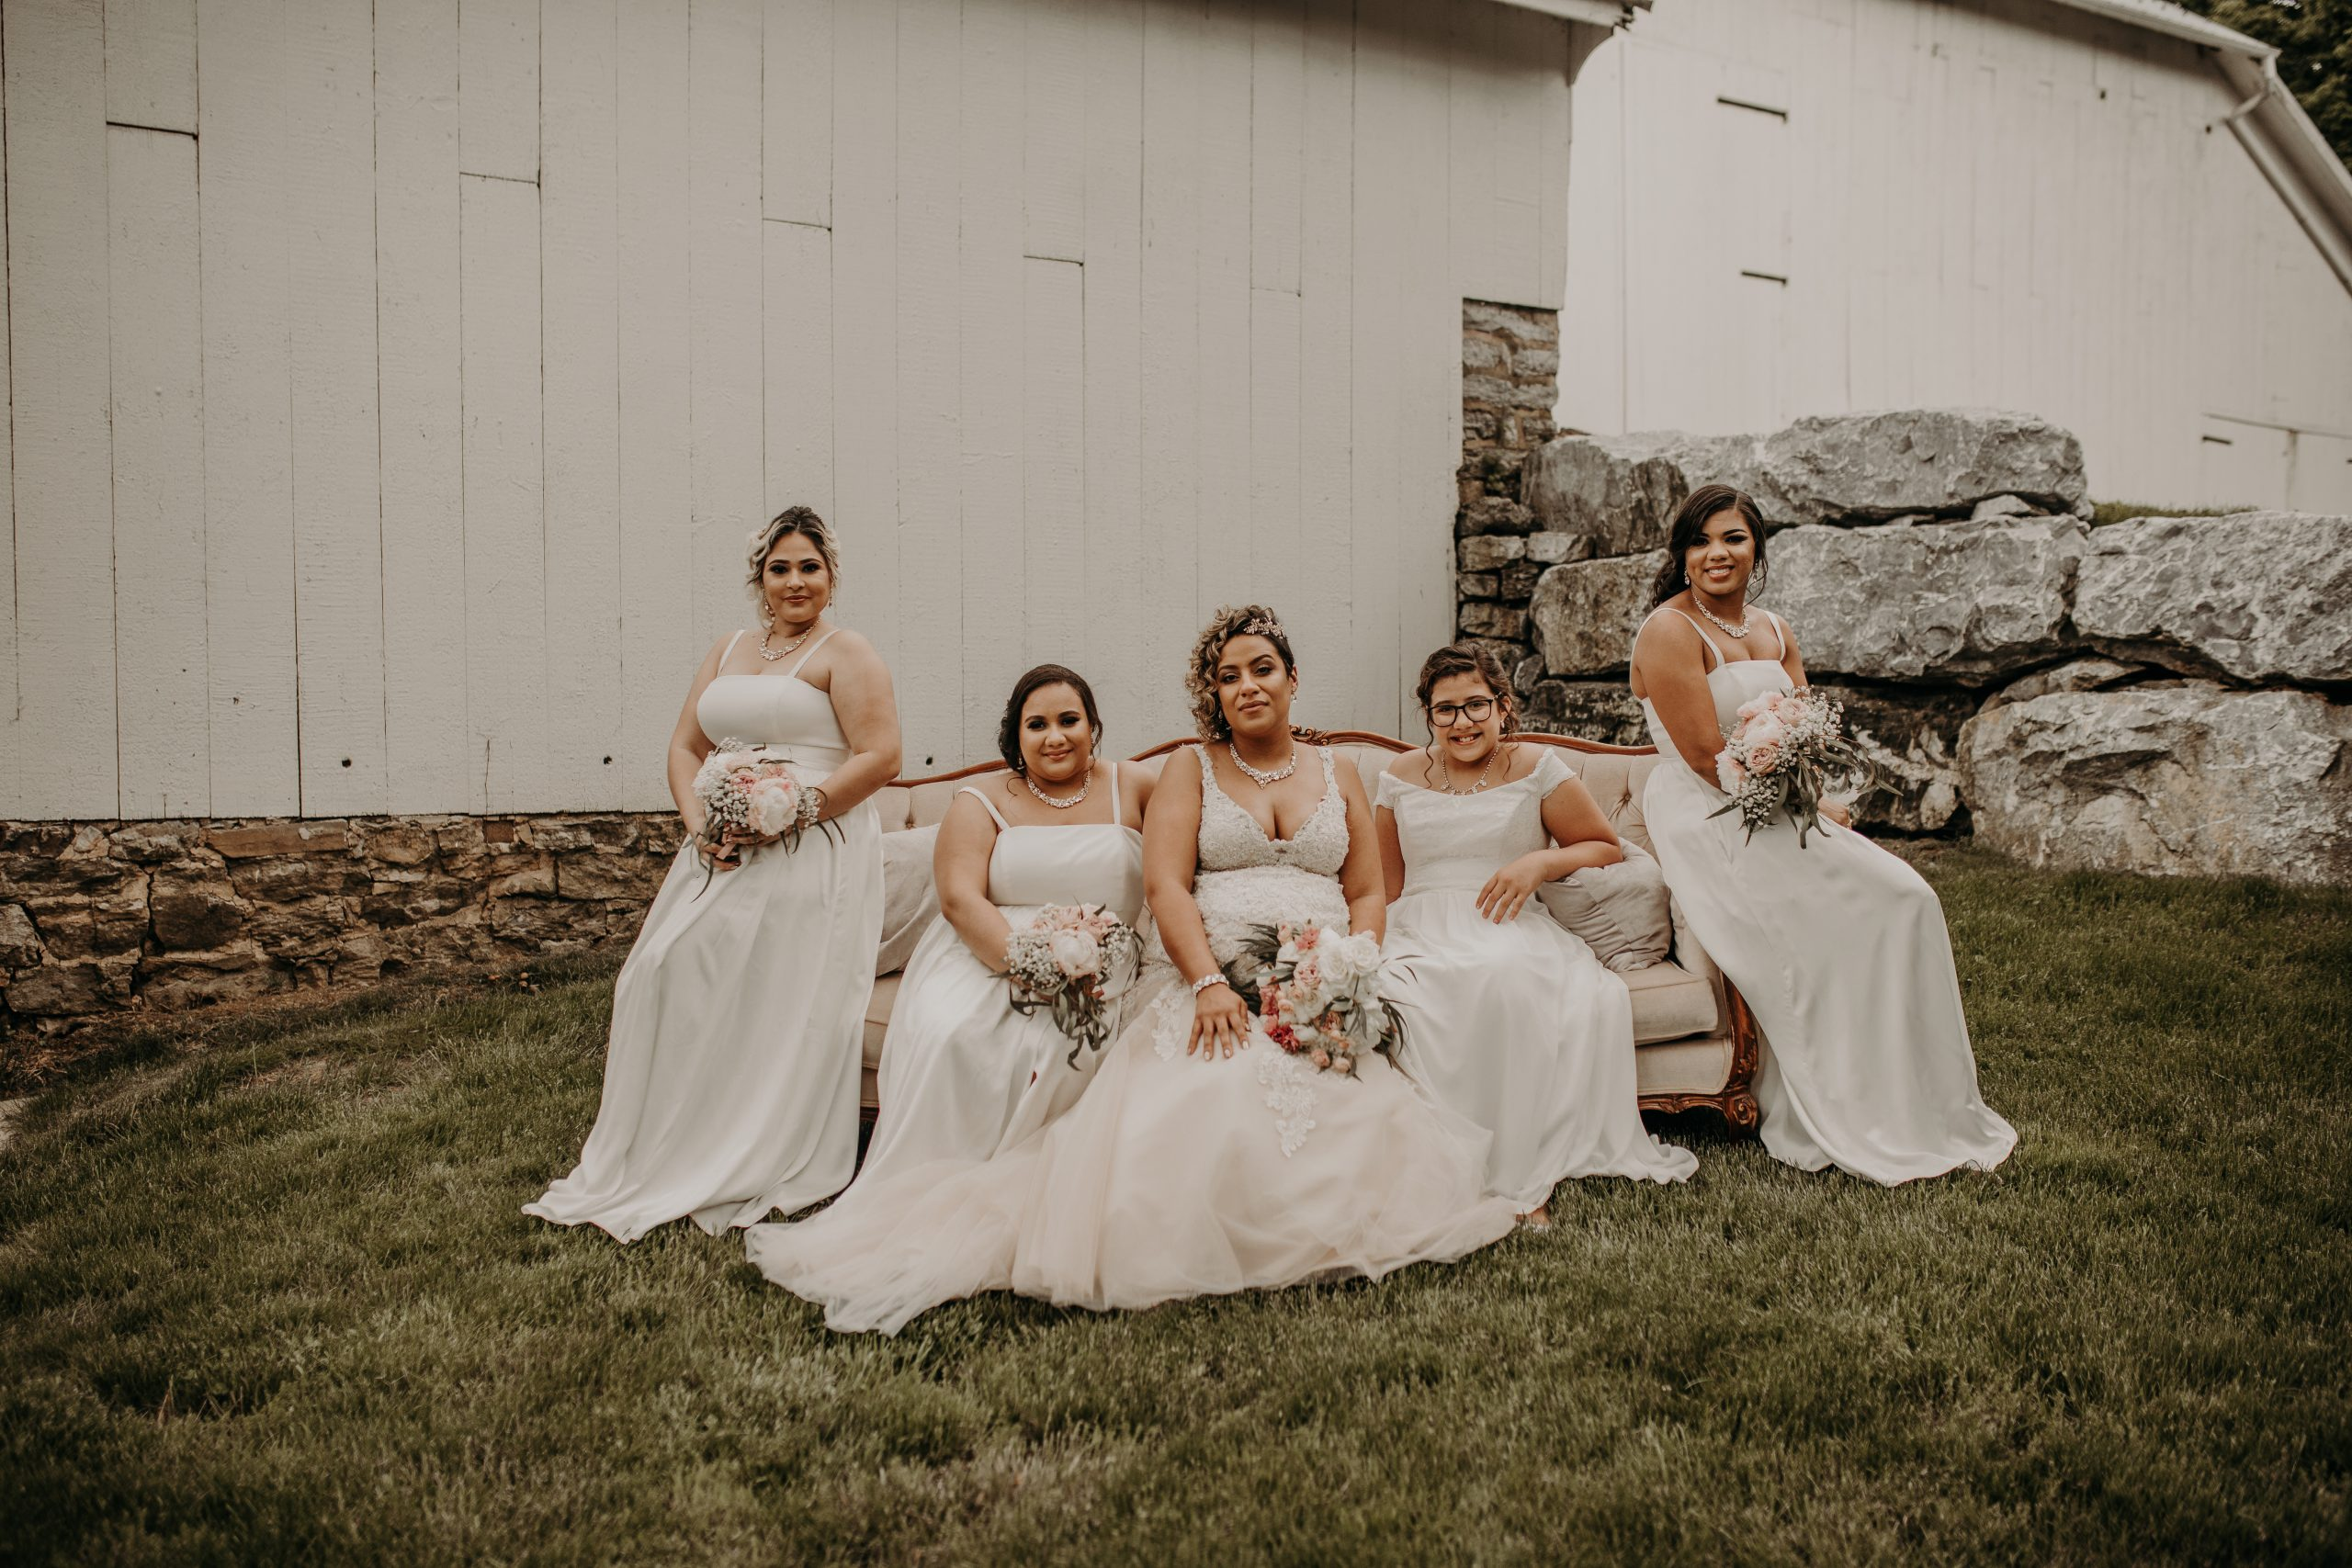 The bridal party is poised and all in white. Christine and Richard wed on the Chestnut Hill Villa grounds on May of 2019. This organic ethereal styled wedding was captured by Garnet Dahlia Photography and featured on Dream Weddings.